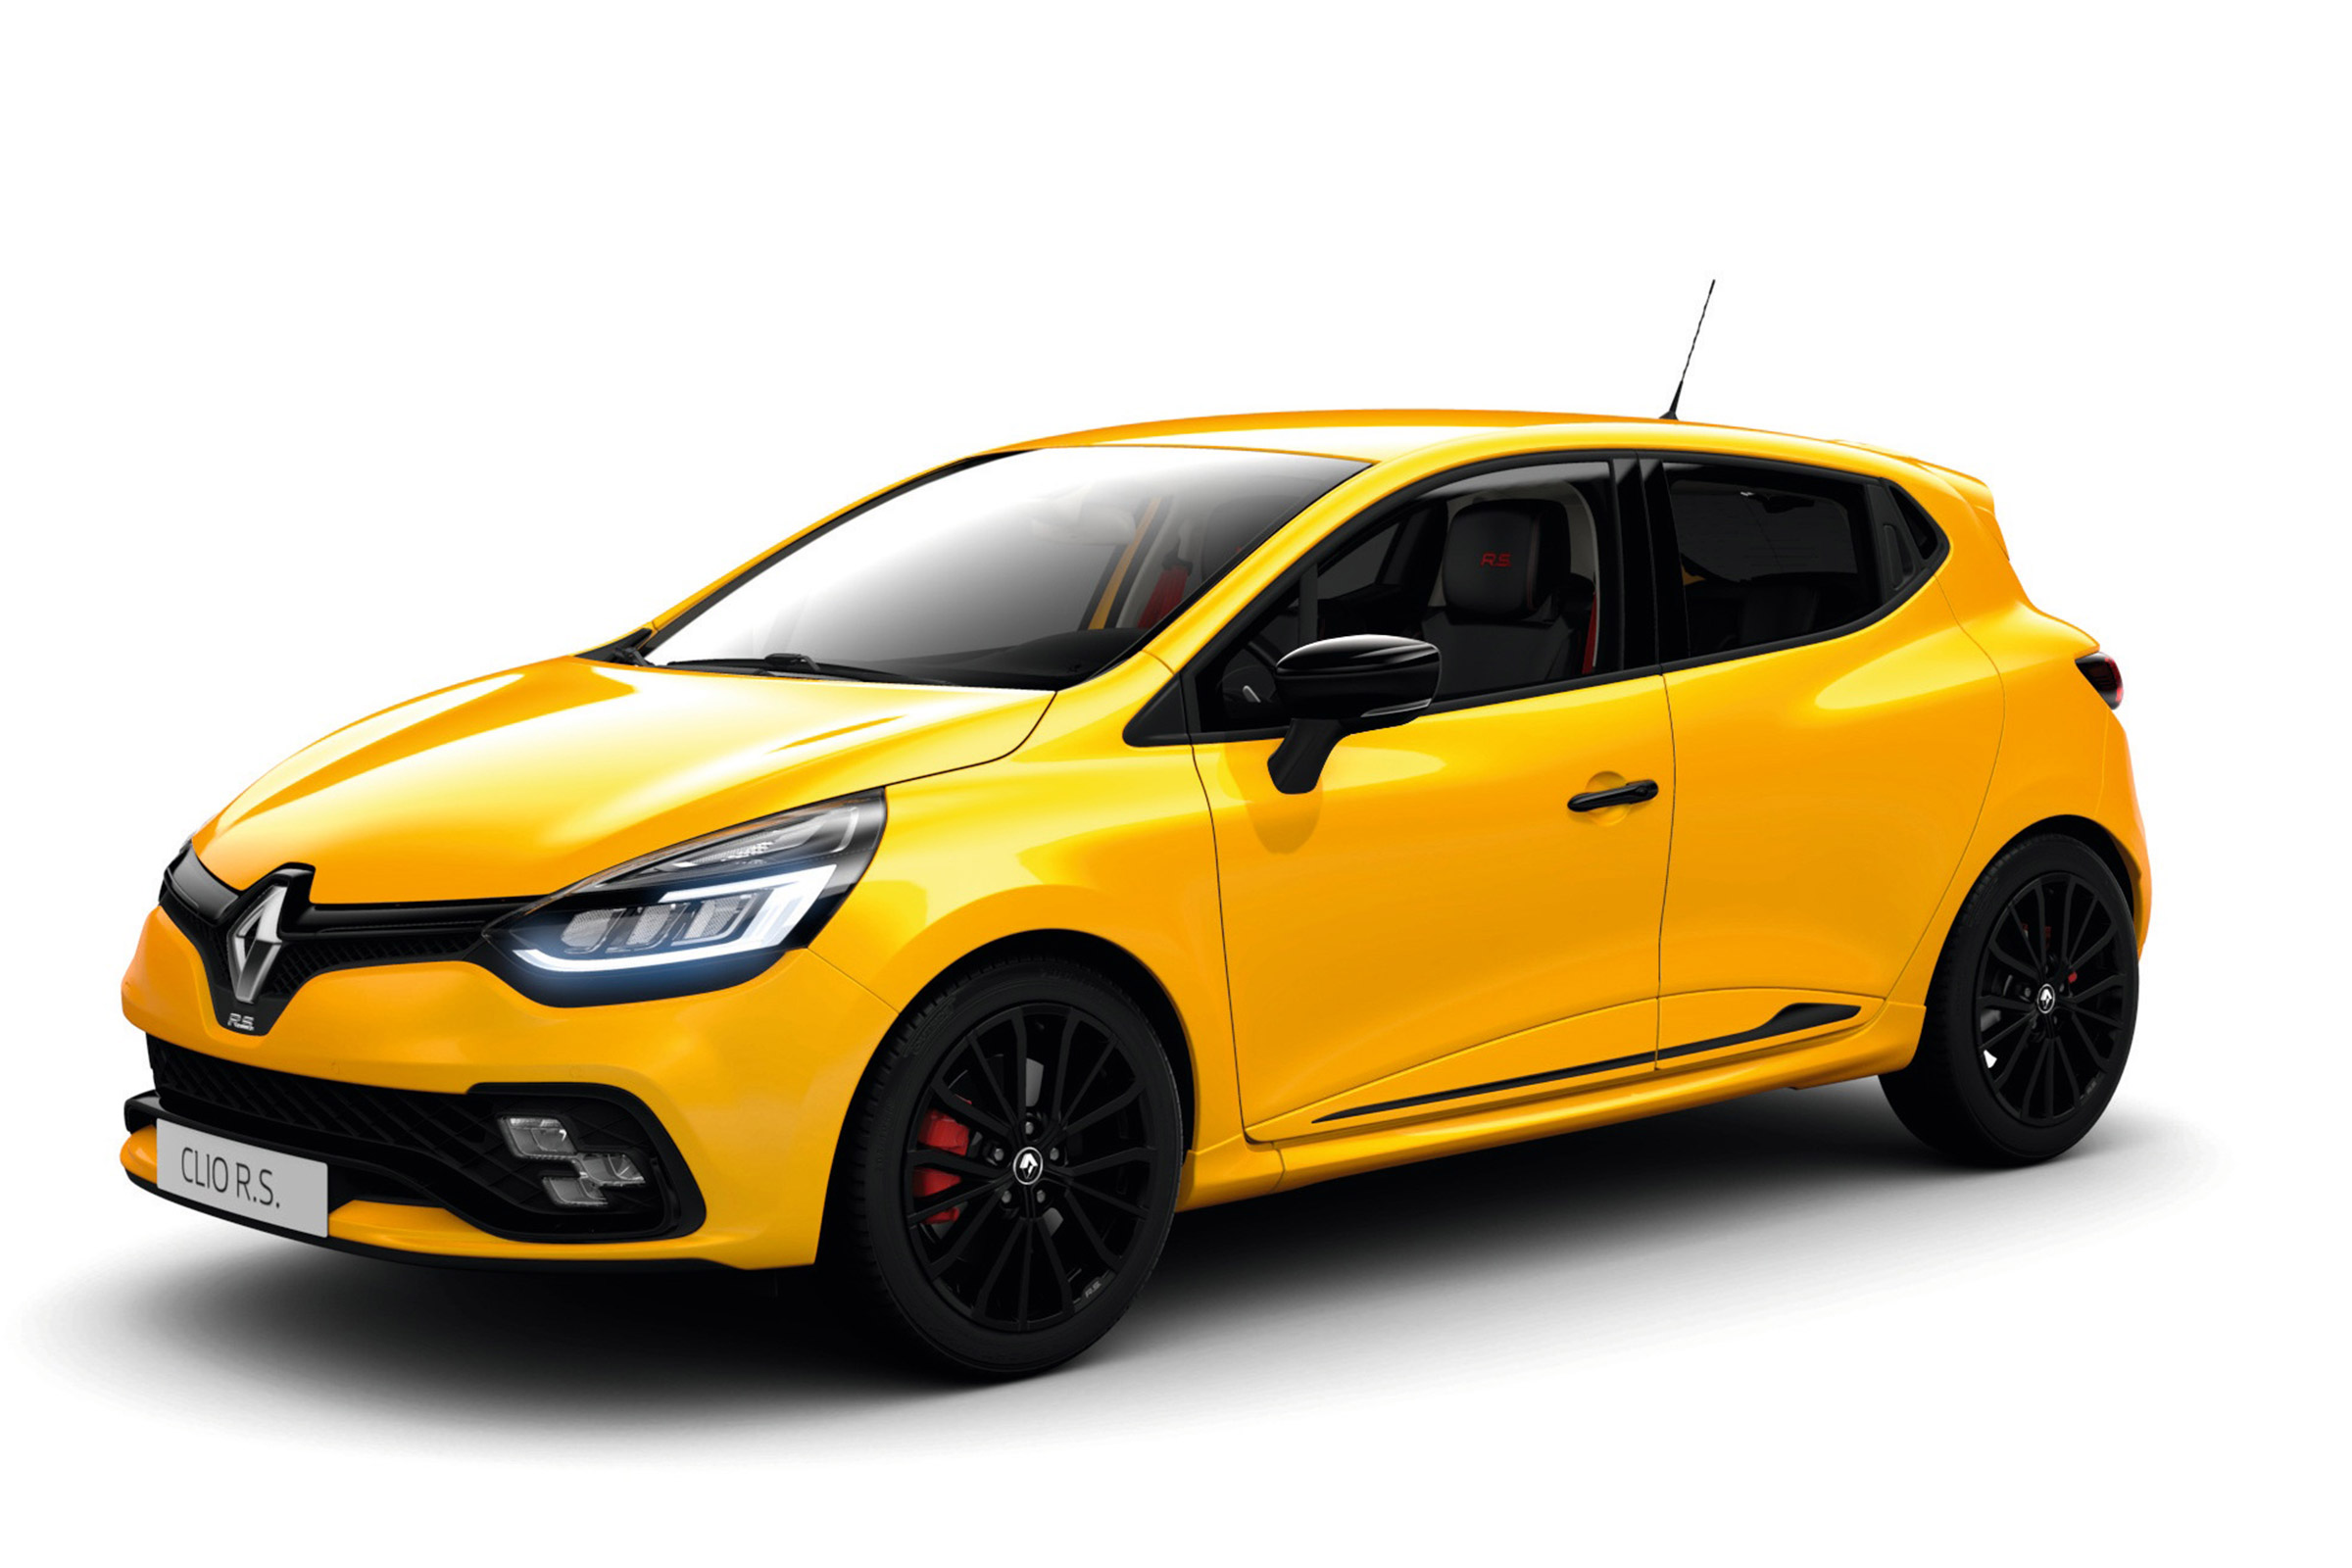 Renault Adds Black Edition Styling Tweaks To Clio Rs Auto Express